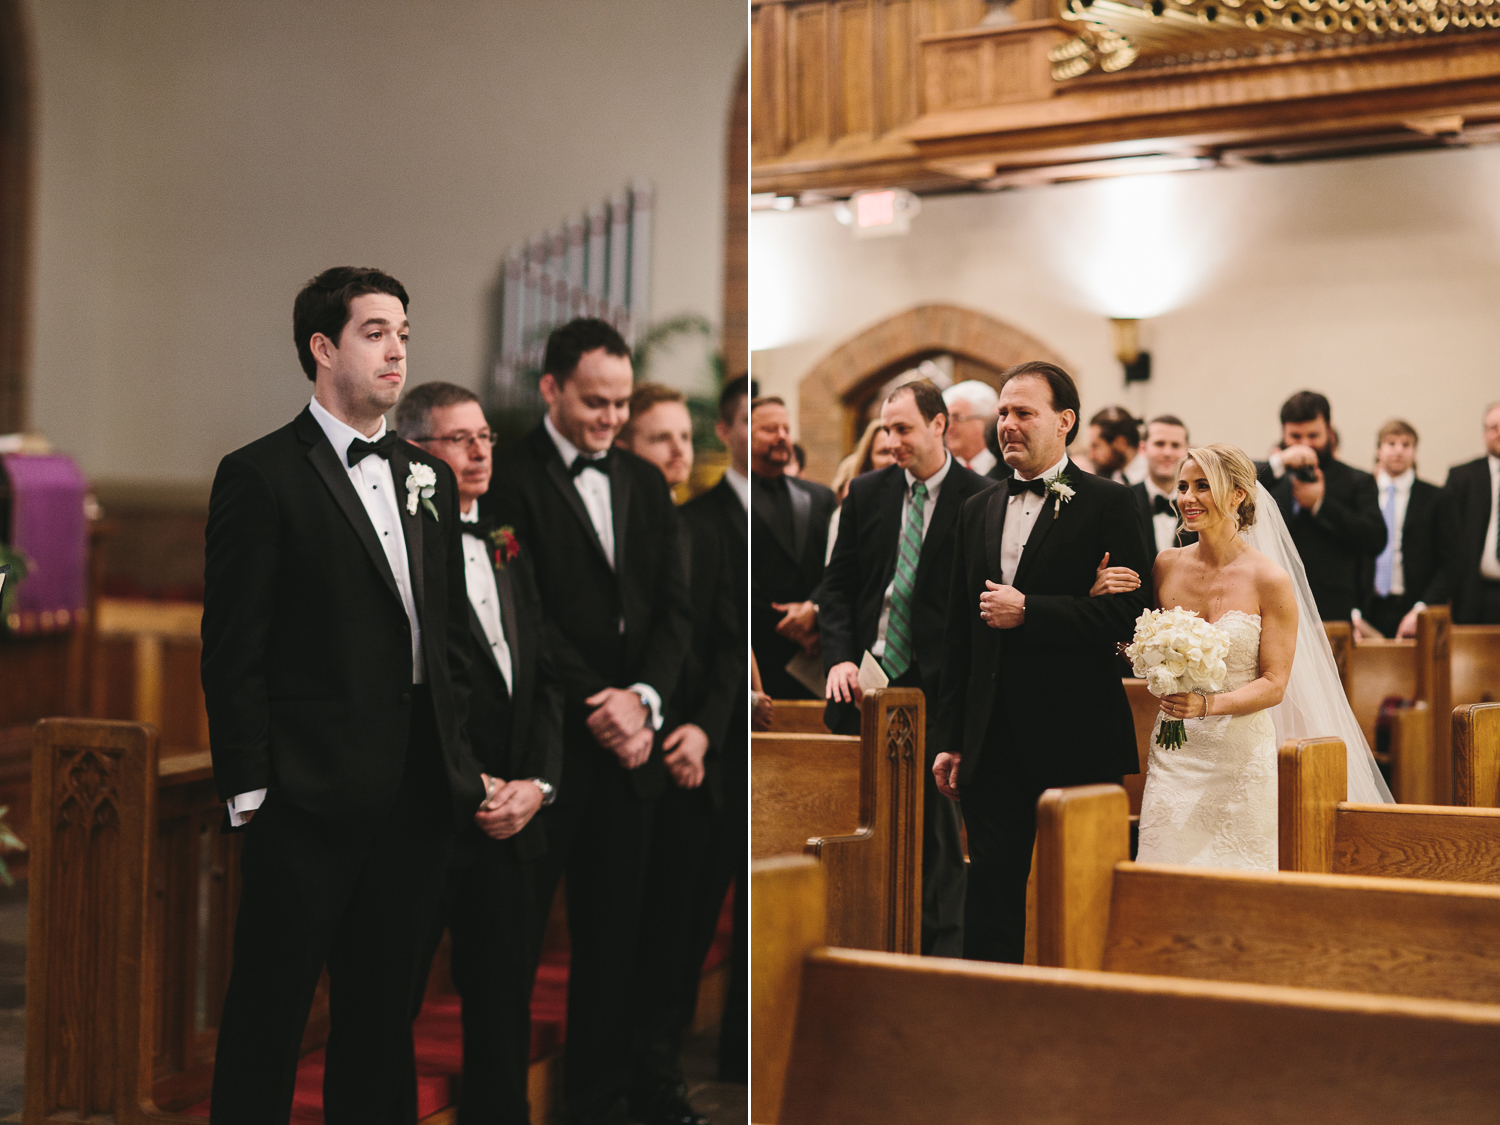 groom first sees his bride walking down the aisle